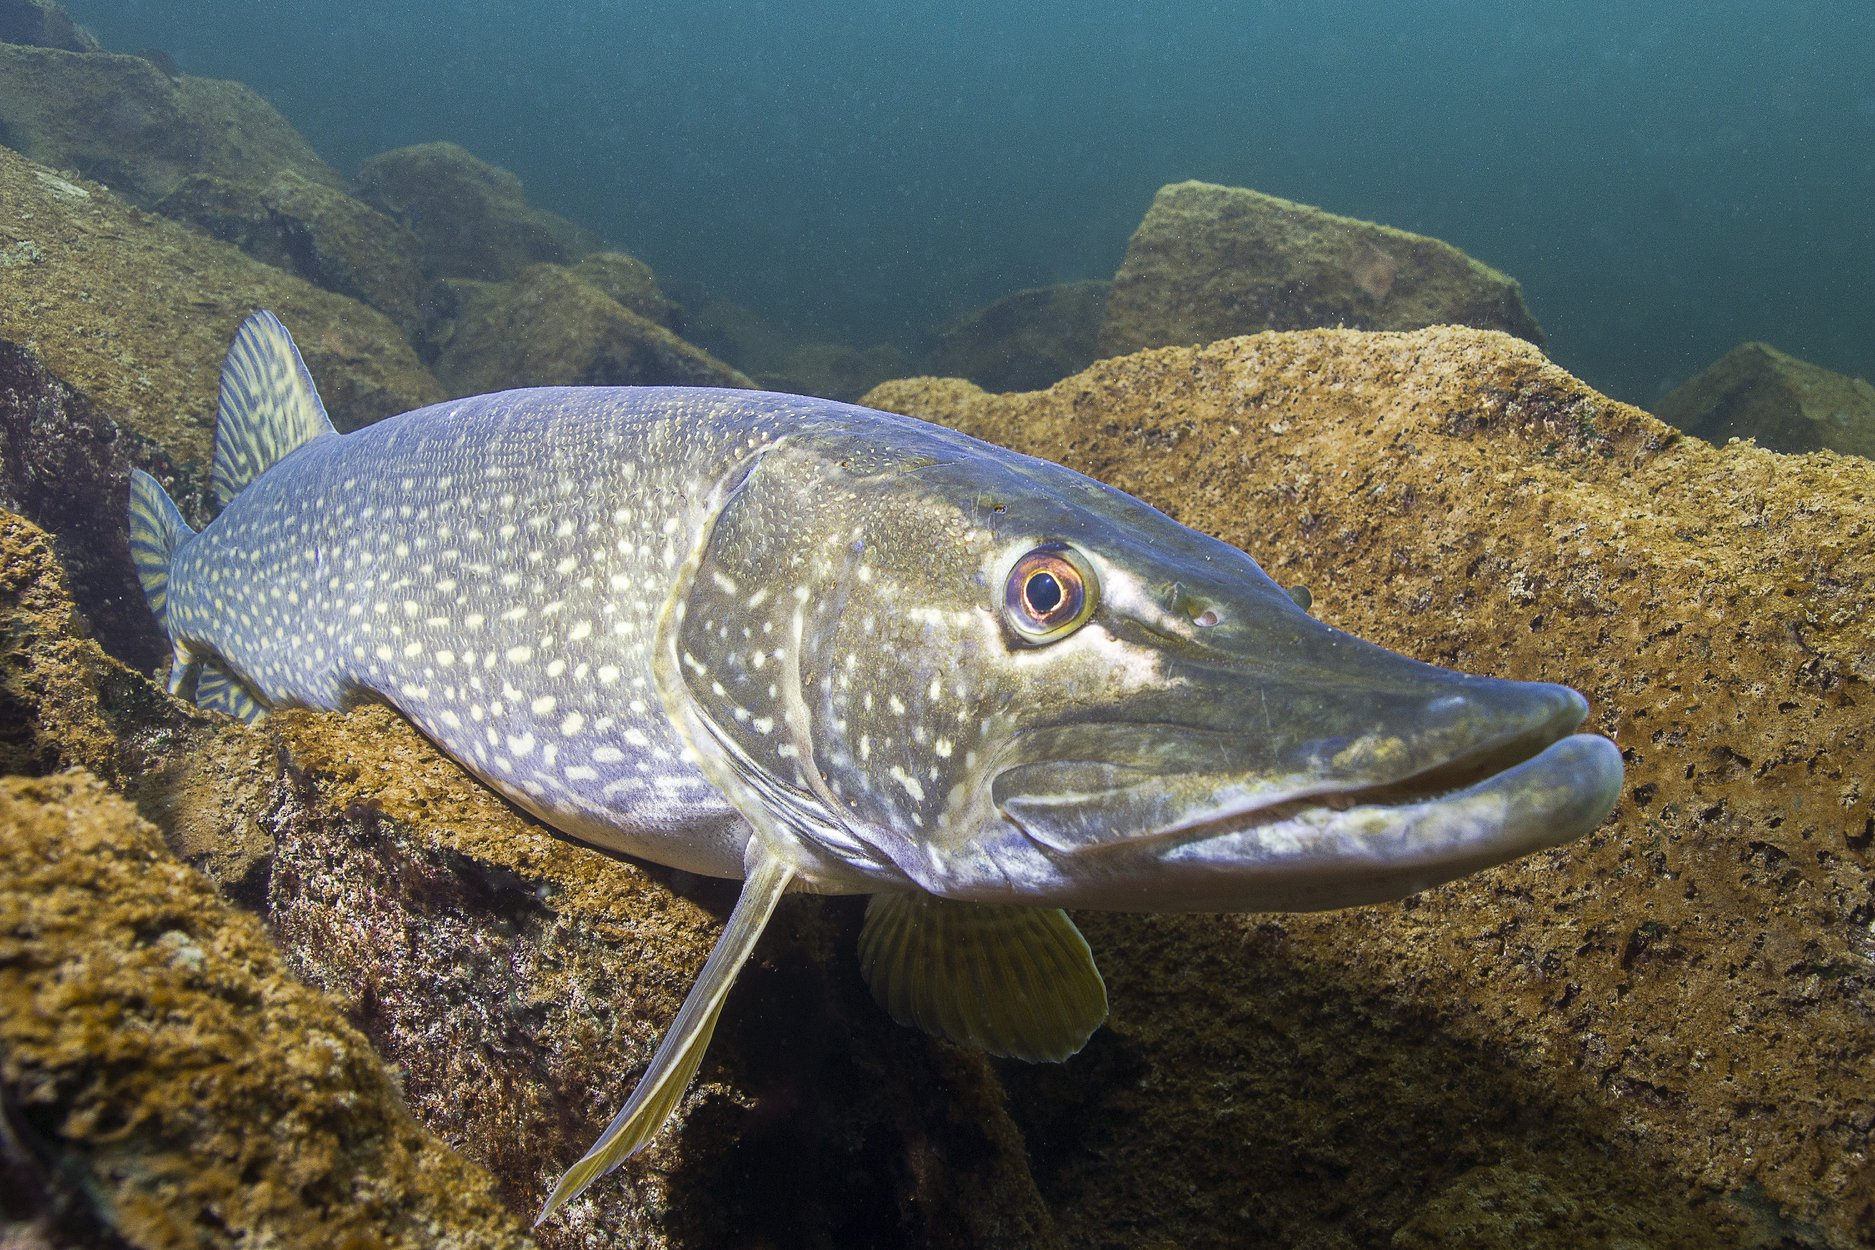 A northern pike resting underwater